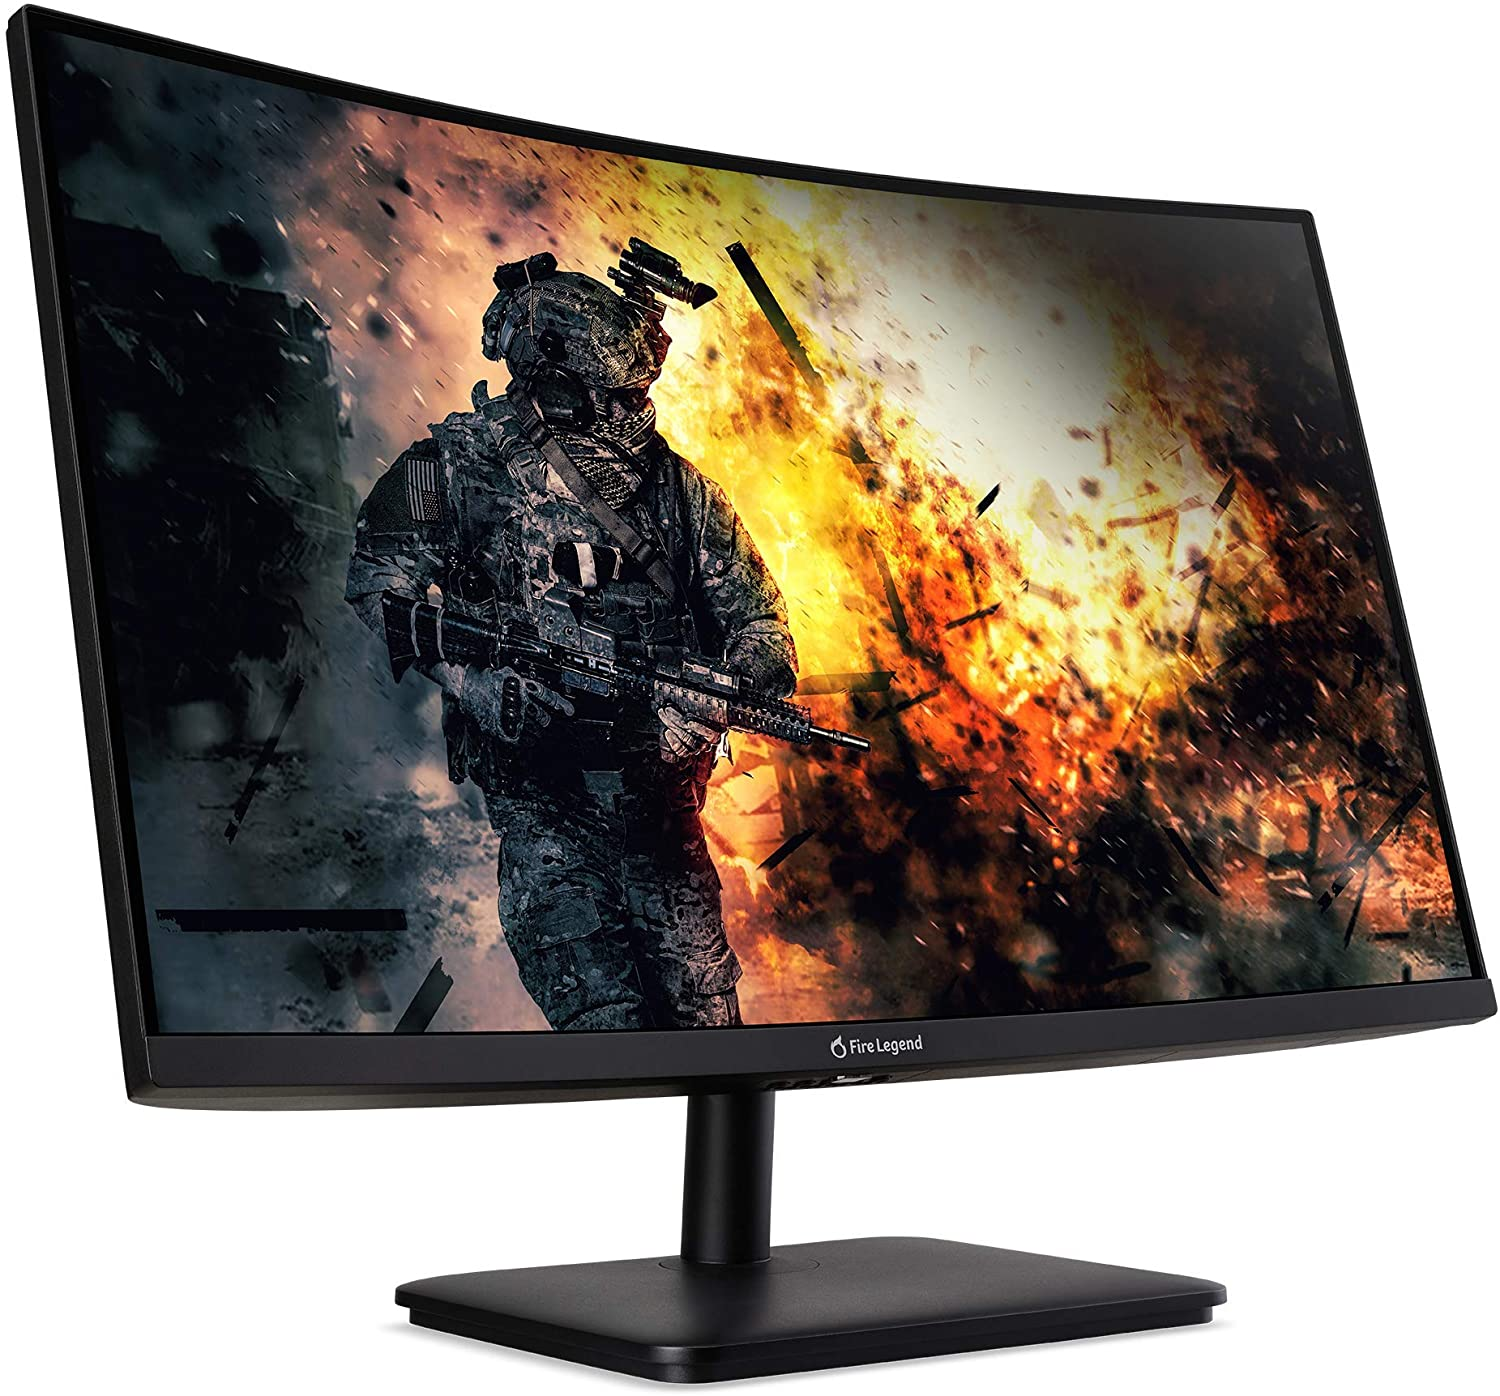 AOPEN 27HC5R 27-inch gaming monitor